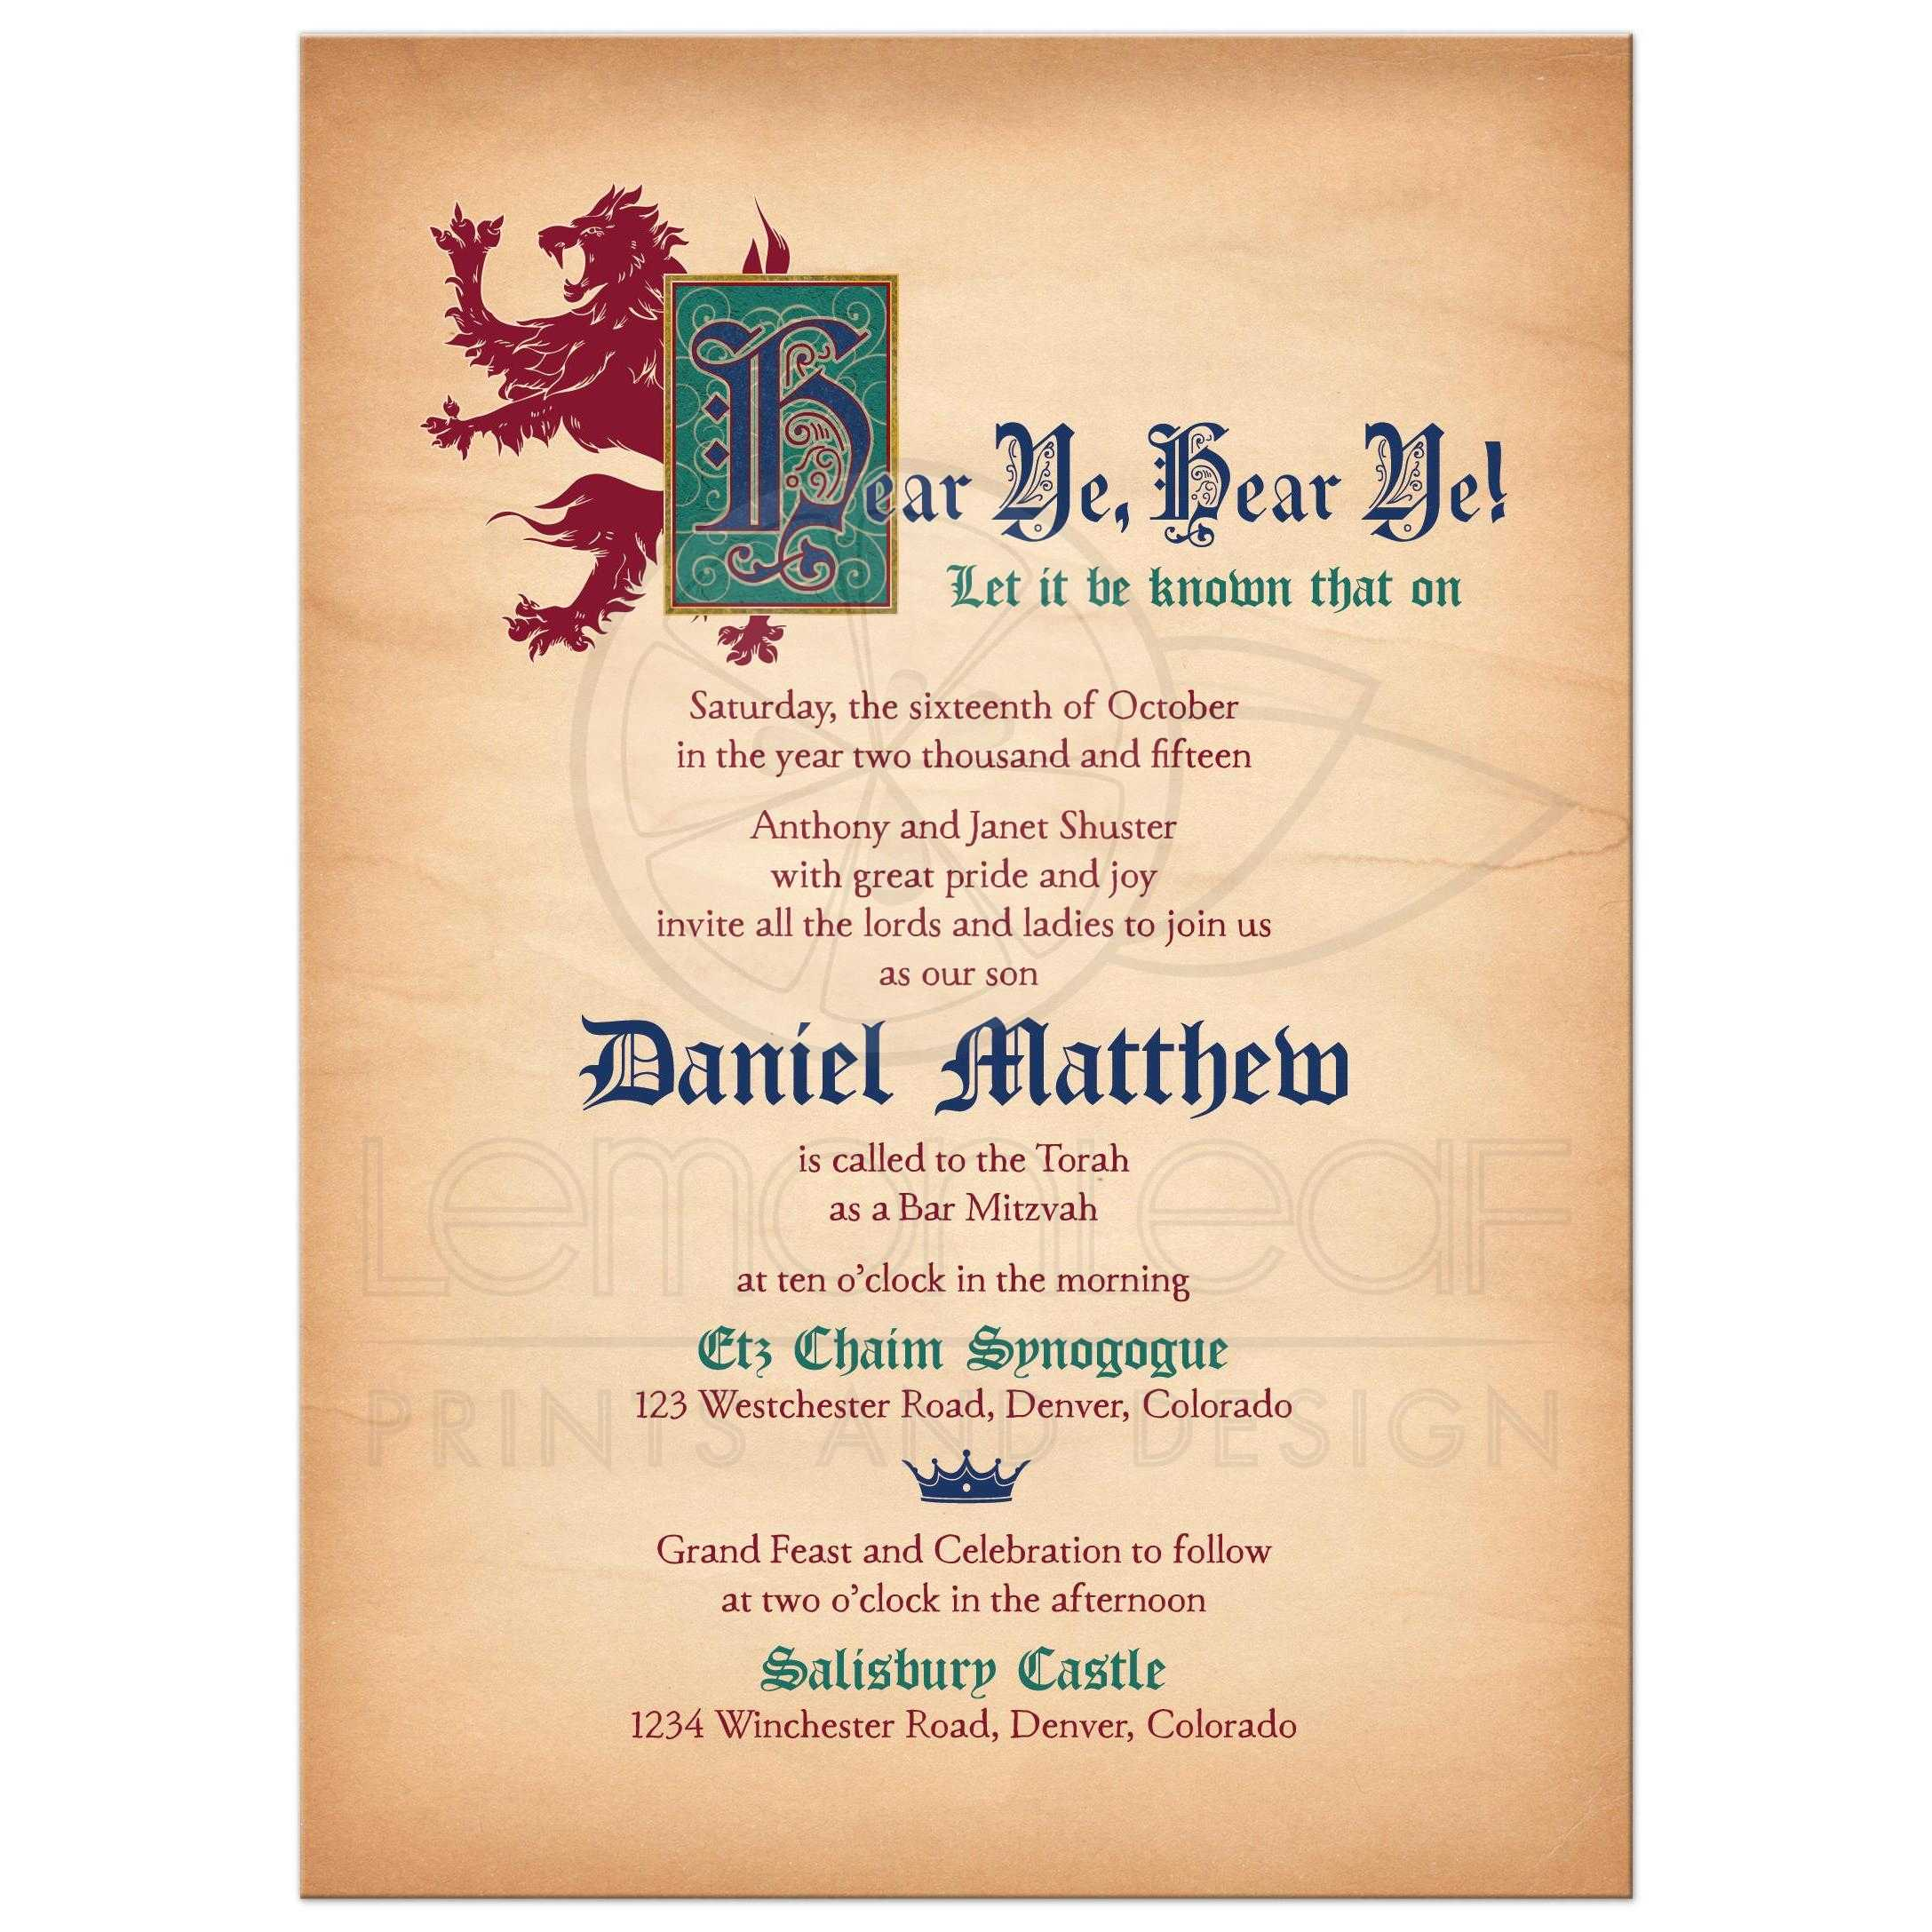 Medieval bar mitzvah invitation fantasy gothic royal decree medieval fantasy royal decree illuminated text bar mitzvah invitation front stopboris